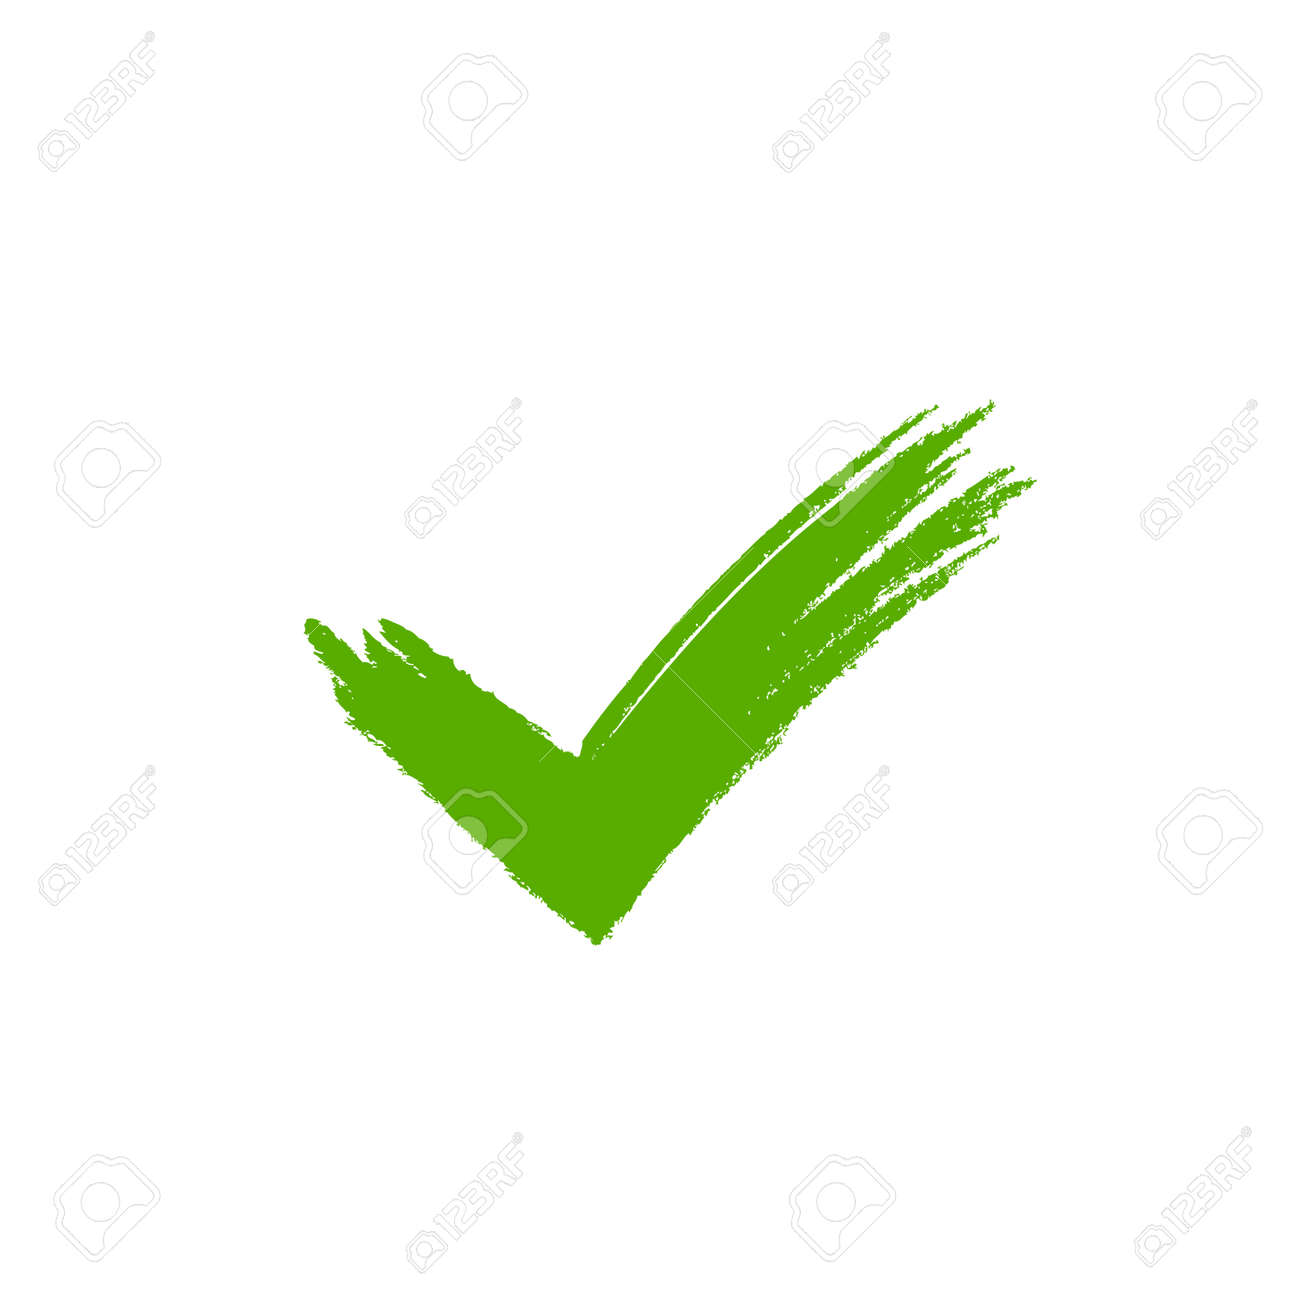 tick sign element green grunge checkmark icon isolated on white rh 123rf com check mark graphic art check mark vector graphic